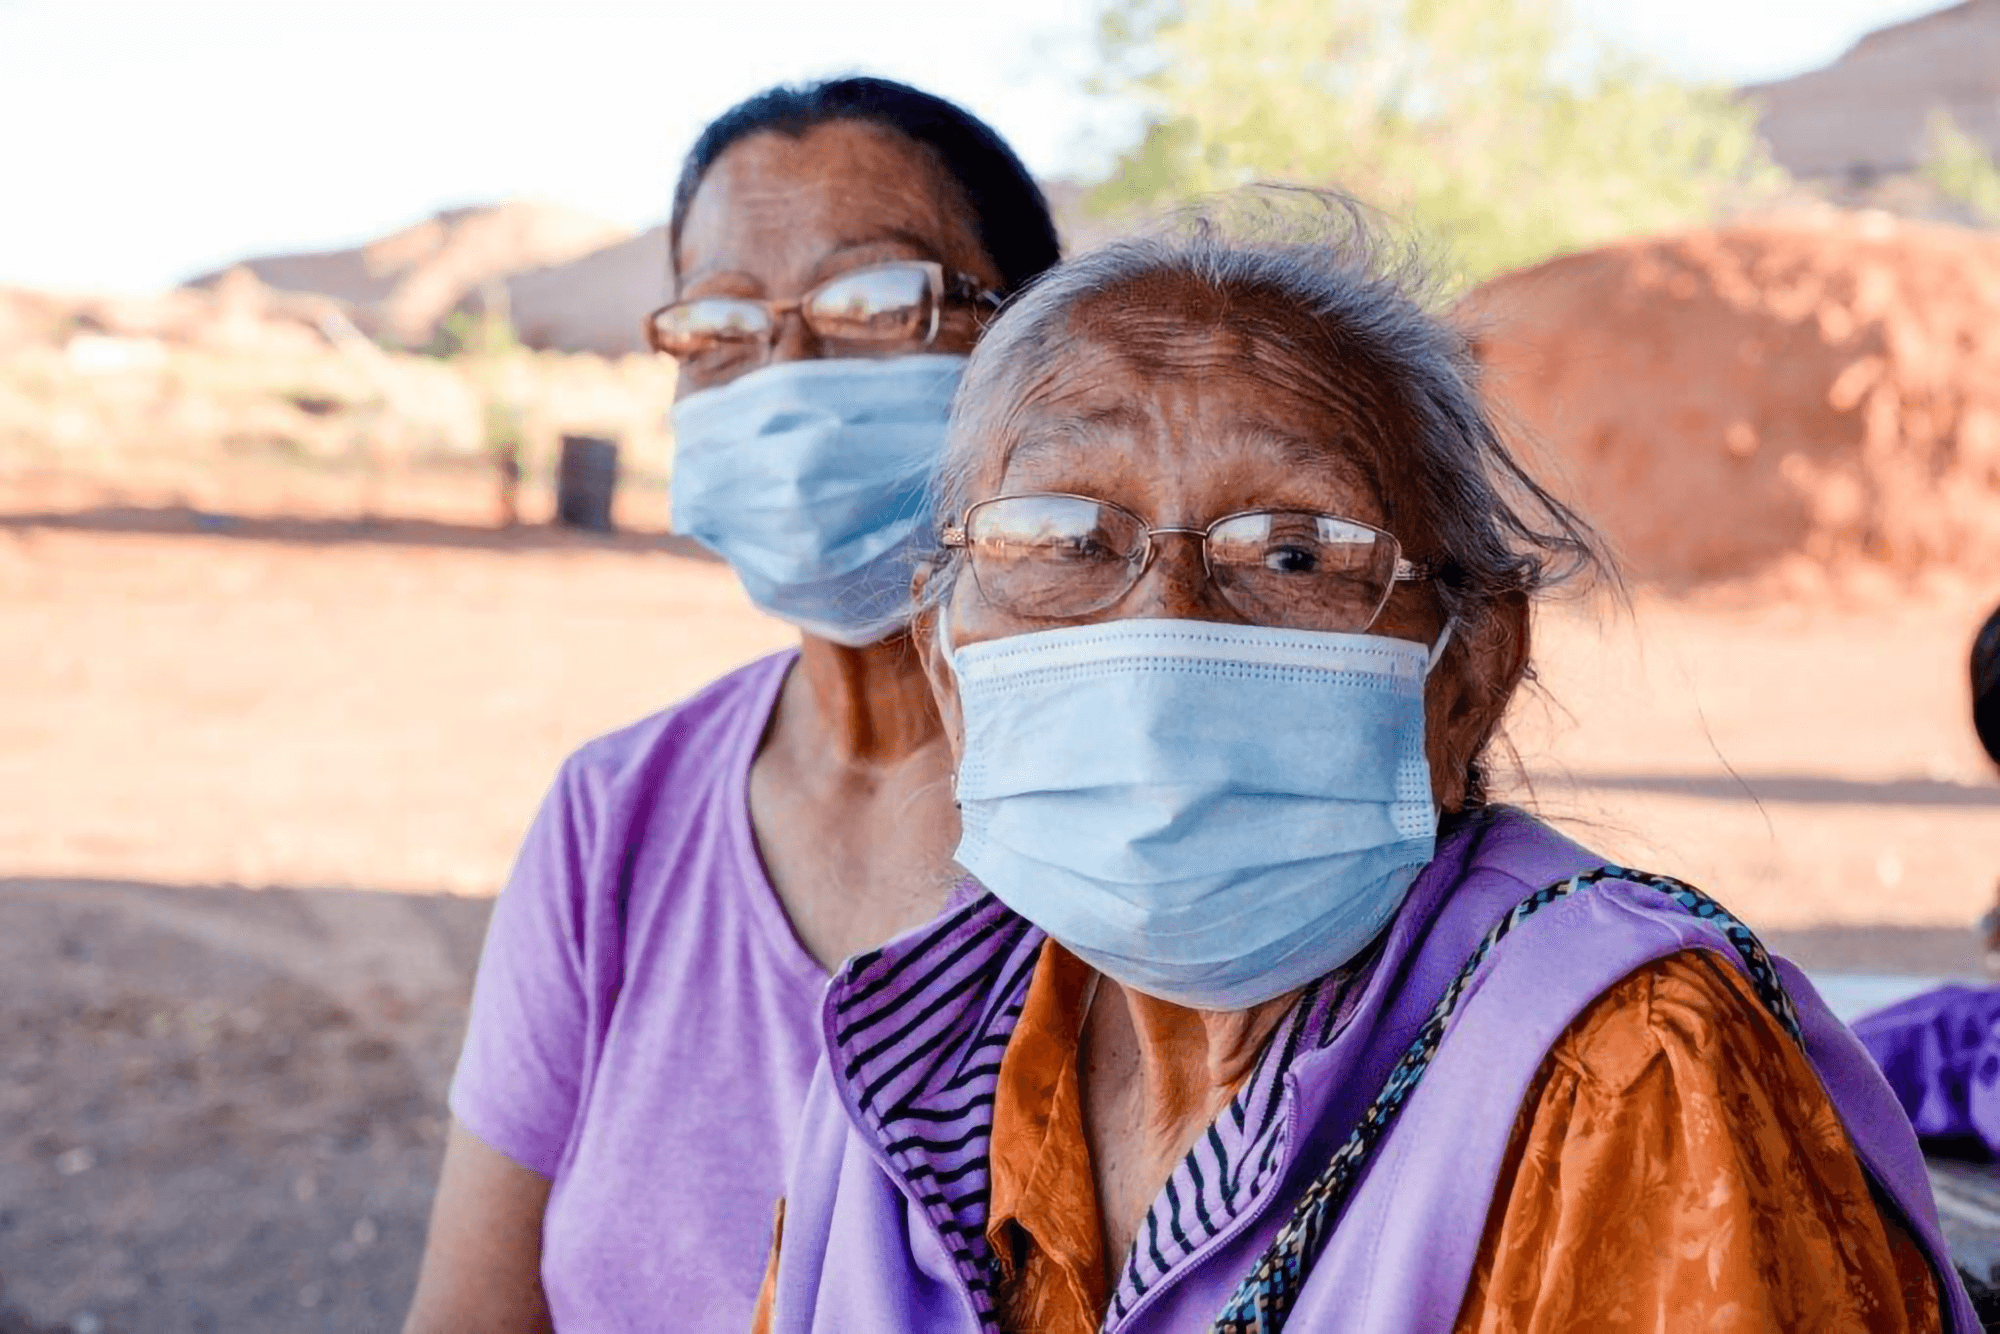 An elderly indigenous woman and a middle-aged indigenous woman both wearing glasses and masks sitting together outside in a dessert environment.